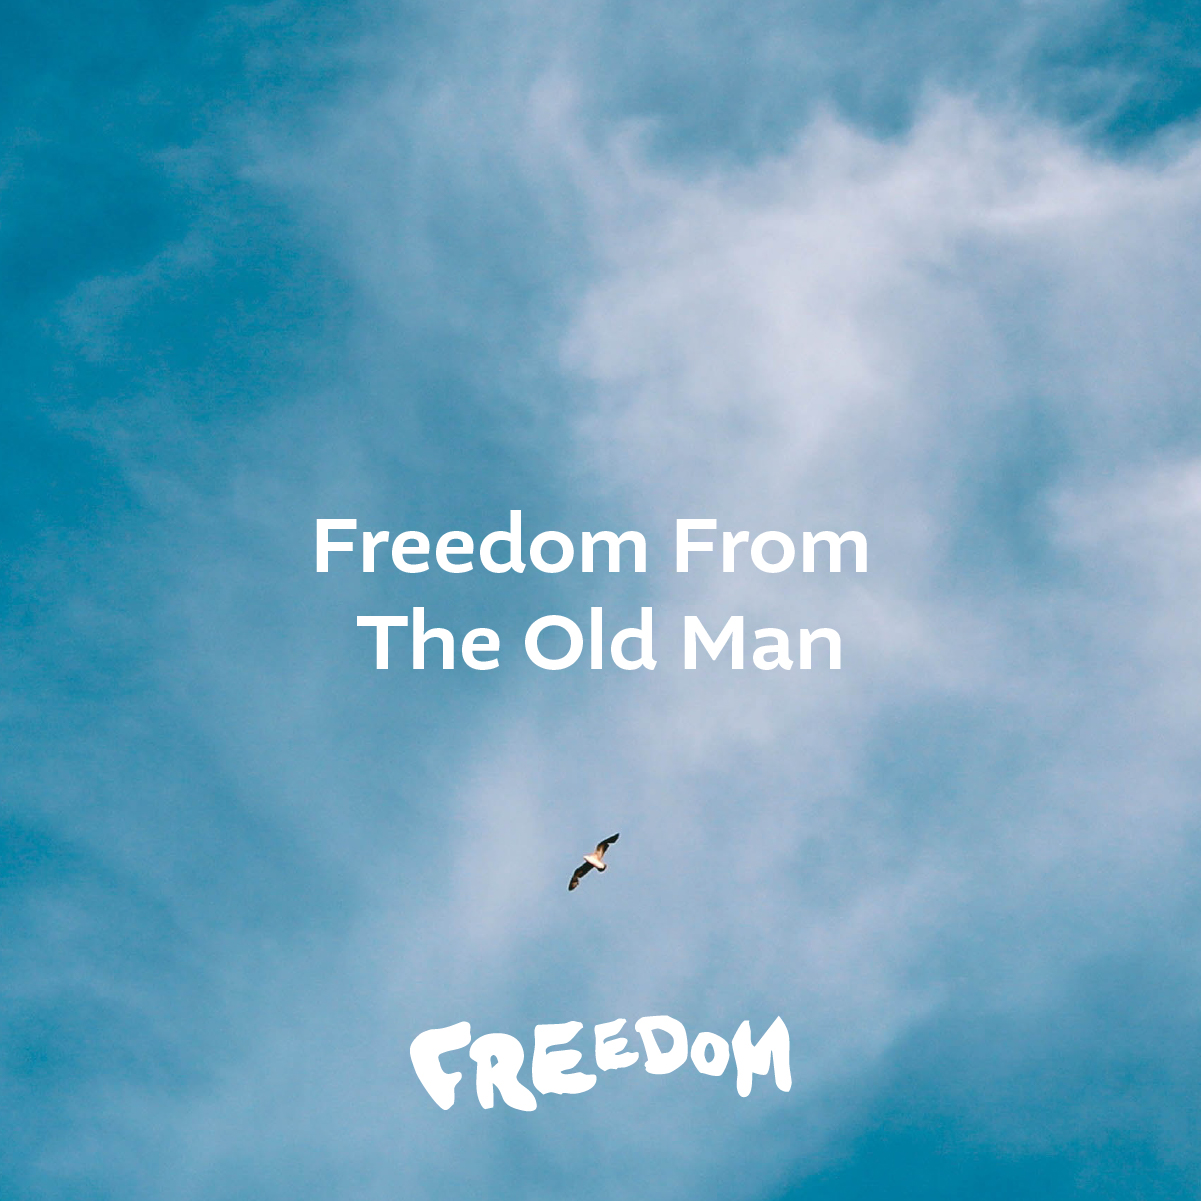 FREEDOM - Freedom From The Old Man